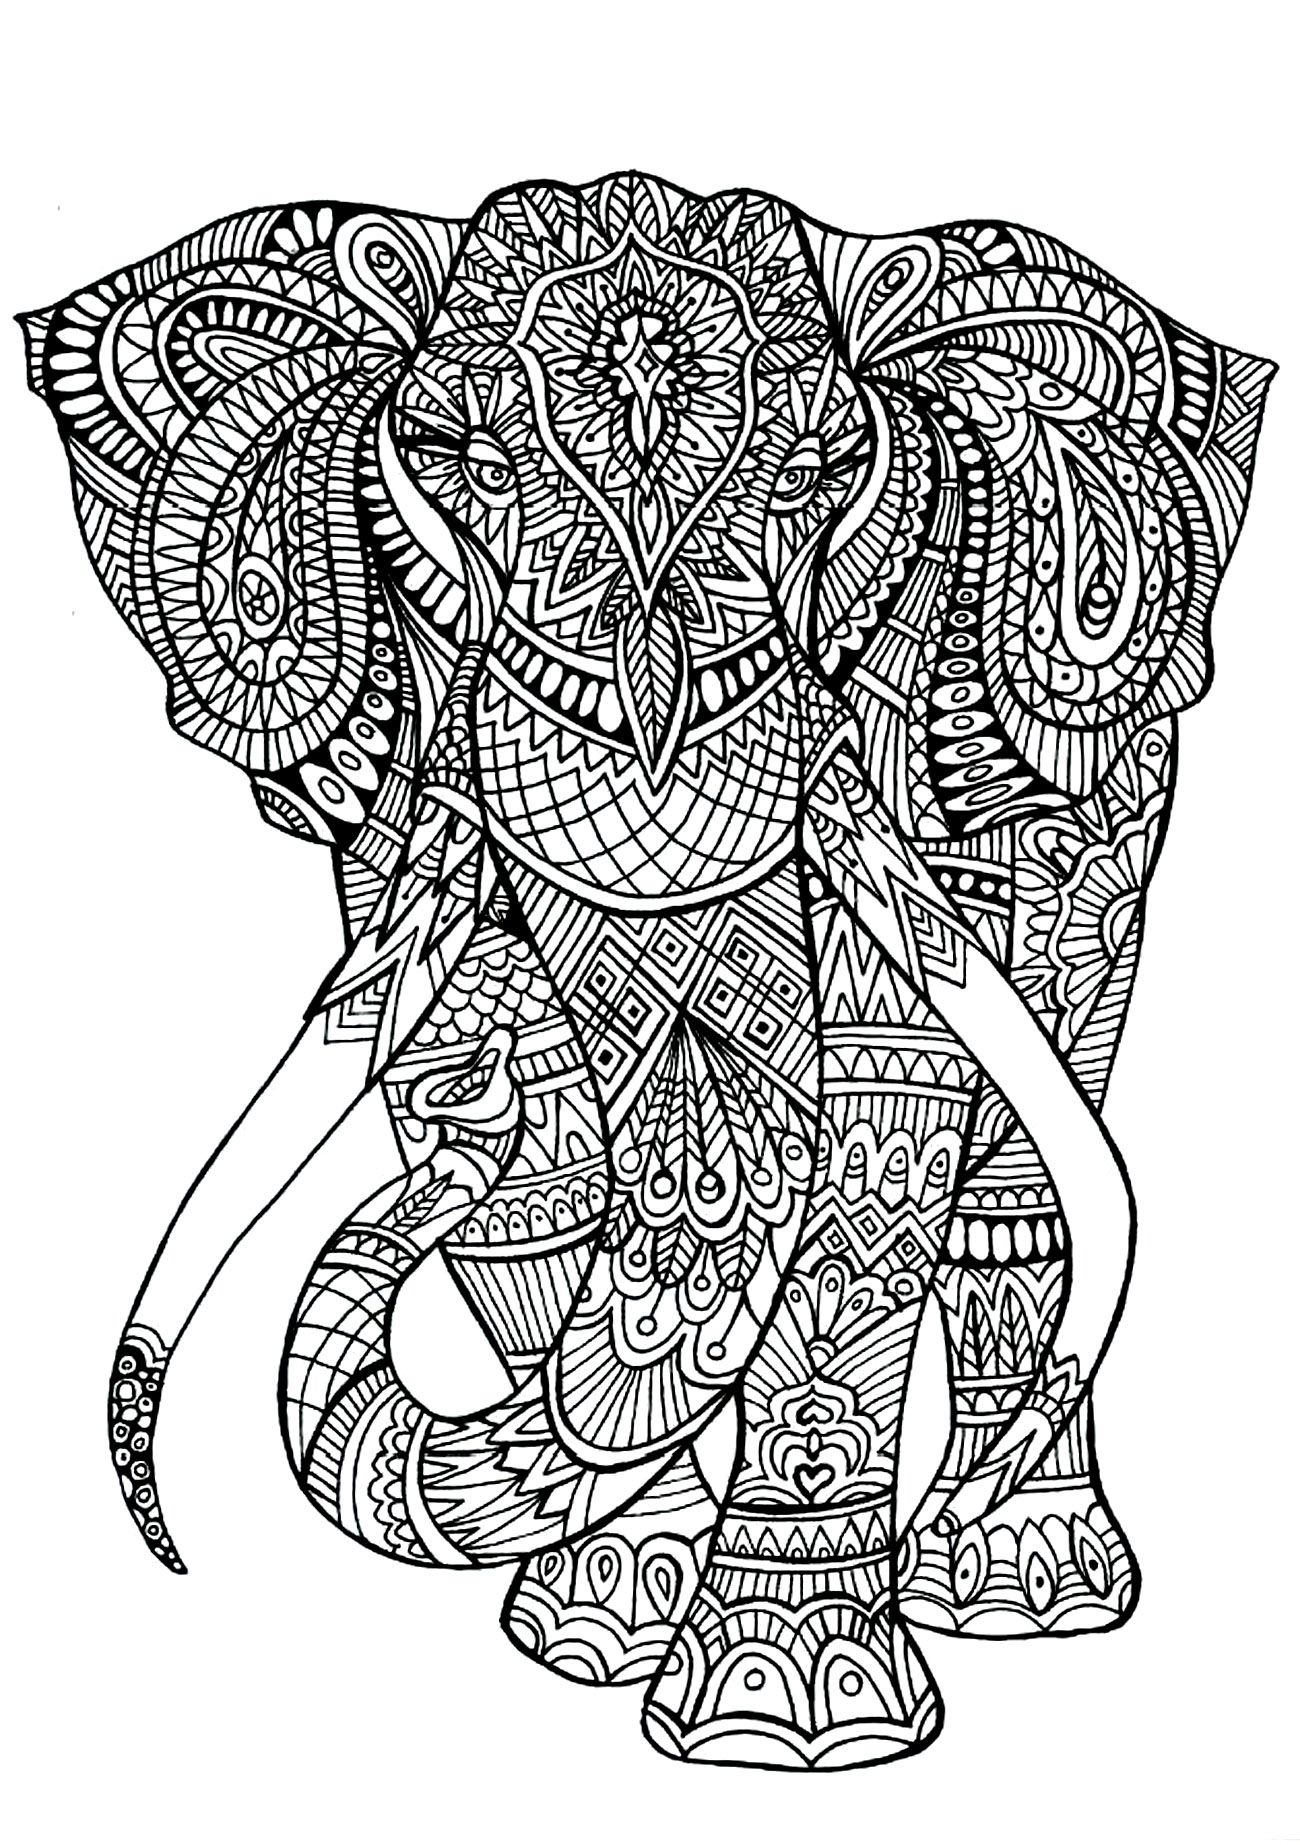 free coloring pages printables coloriage gratuit coloriage